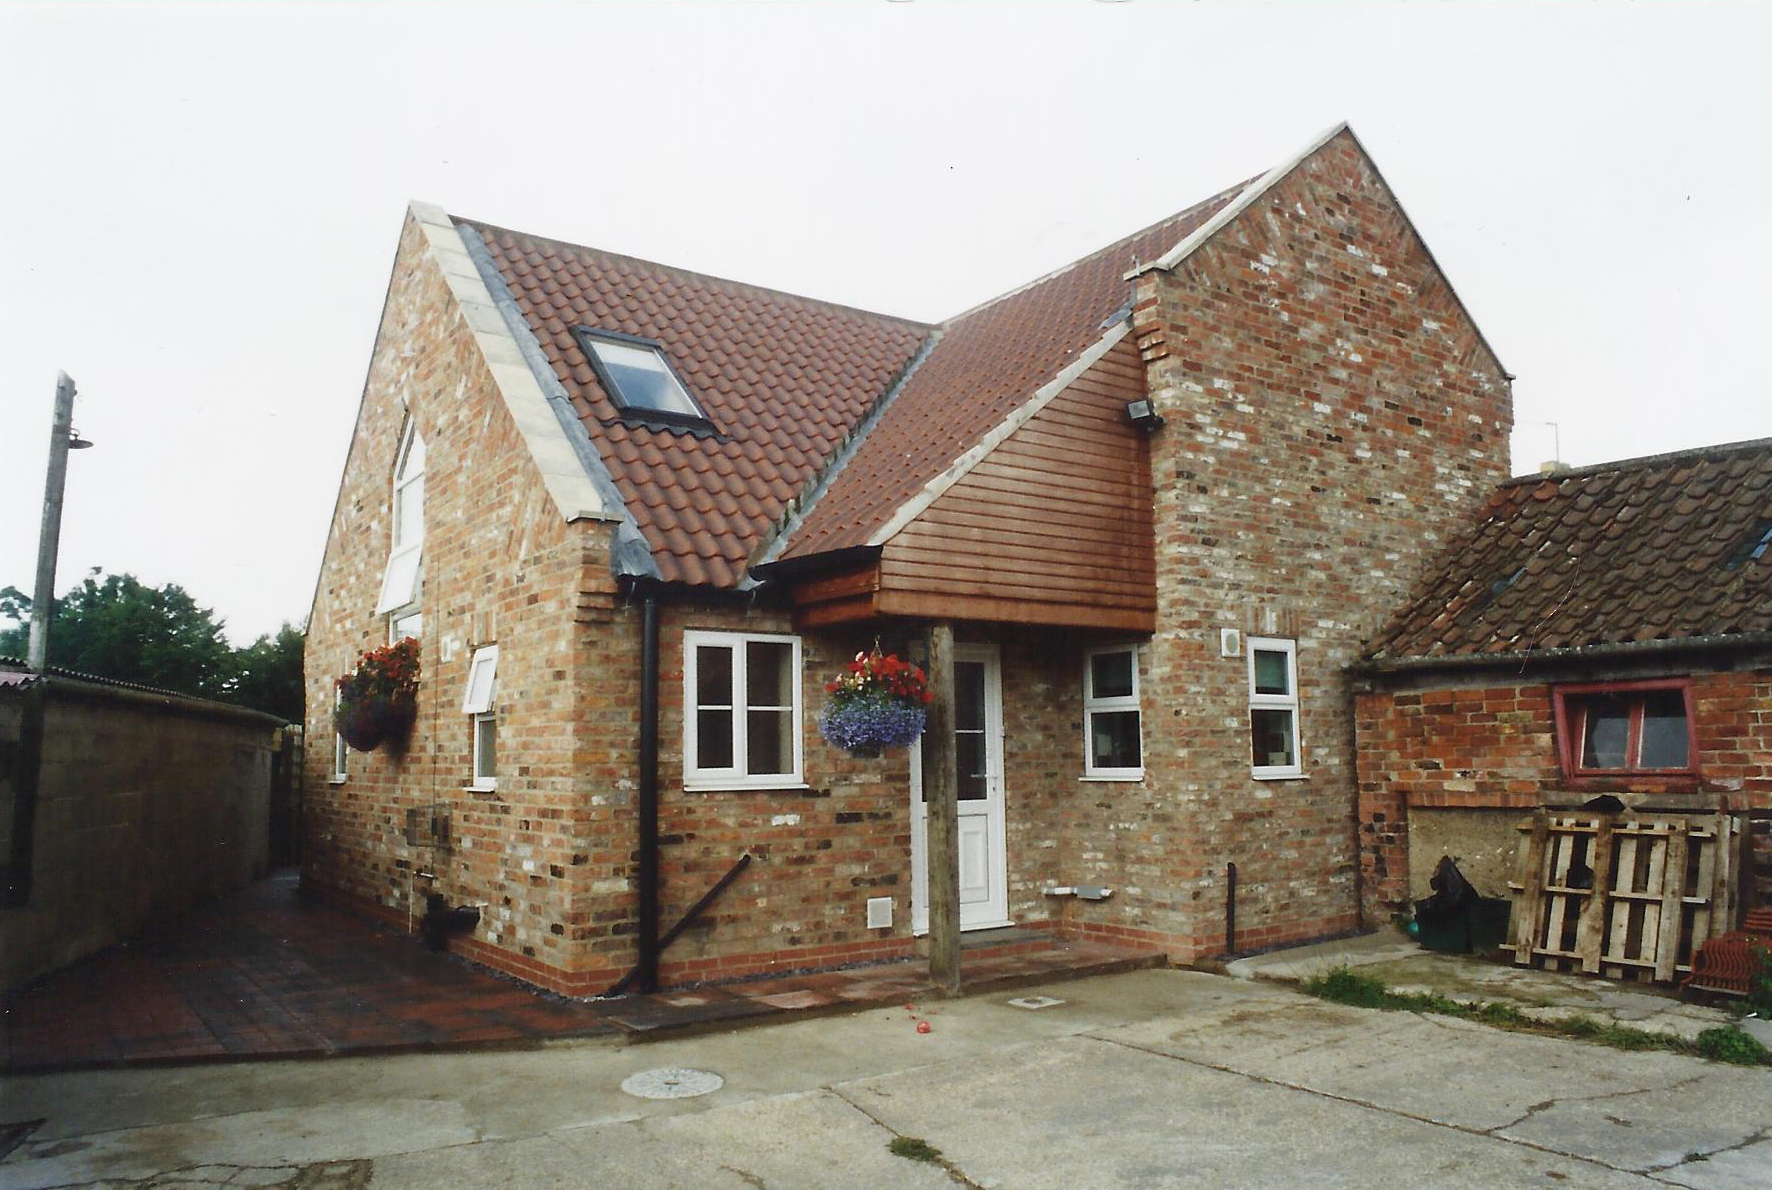 Exterior 2 - Laurel Cottage - Hornsea Architects - Samuel Kendall Associates.jpg